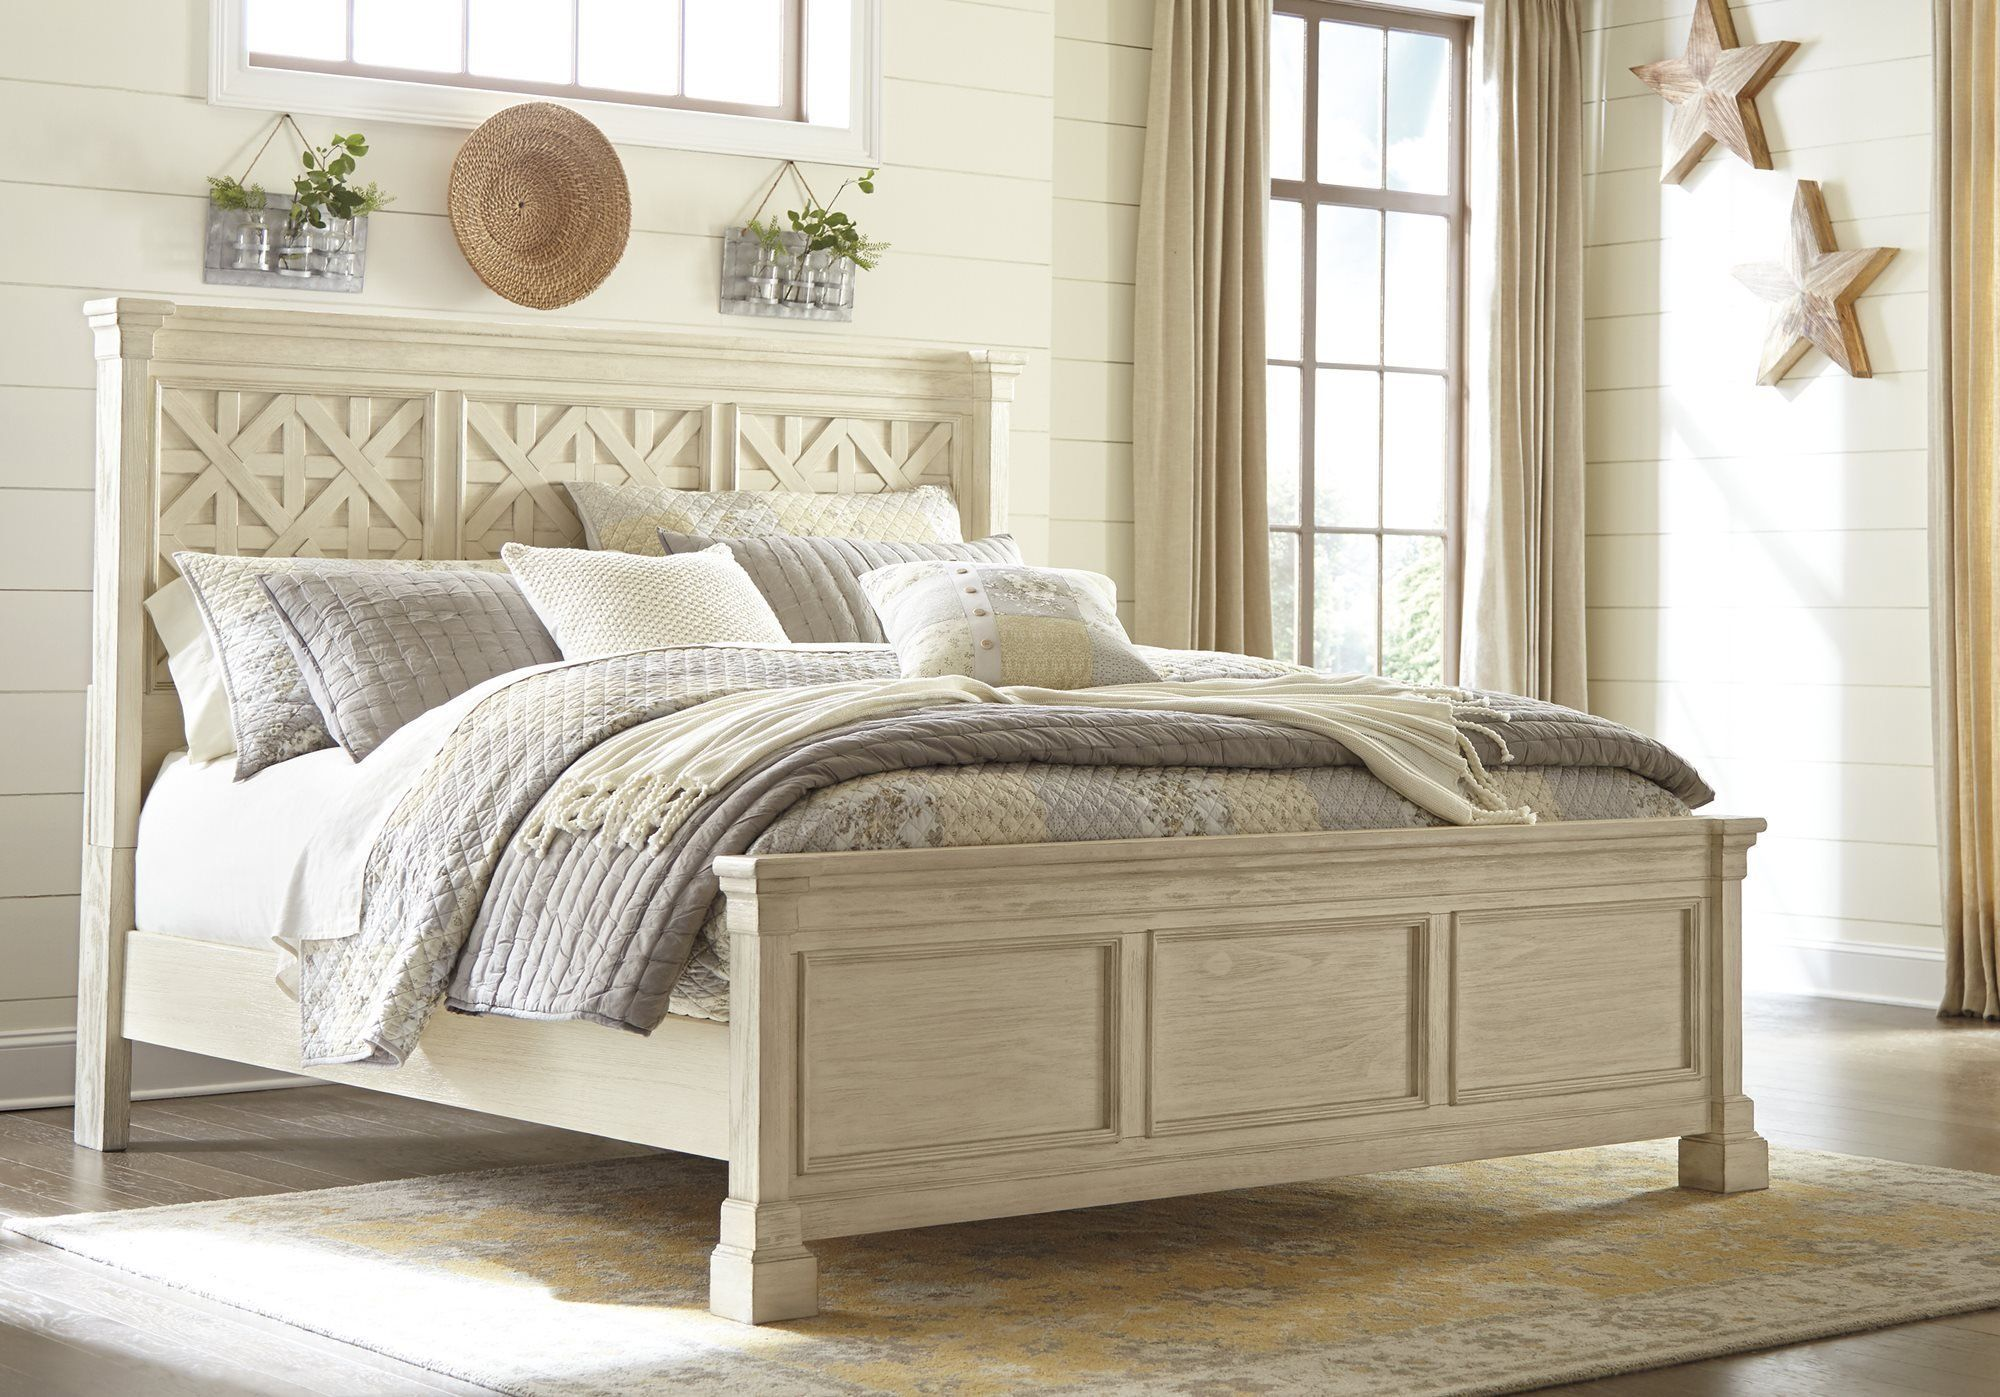 Ashley Bolanburg Queen Panel Bed in Antique White